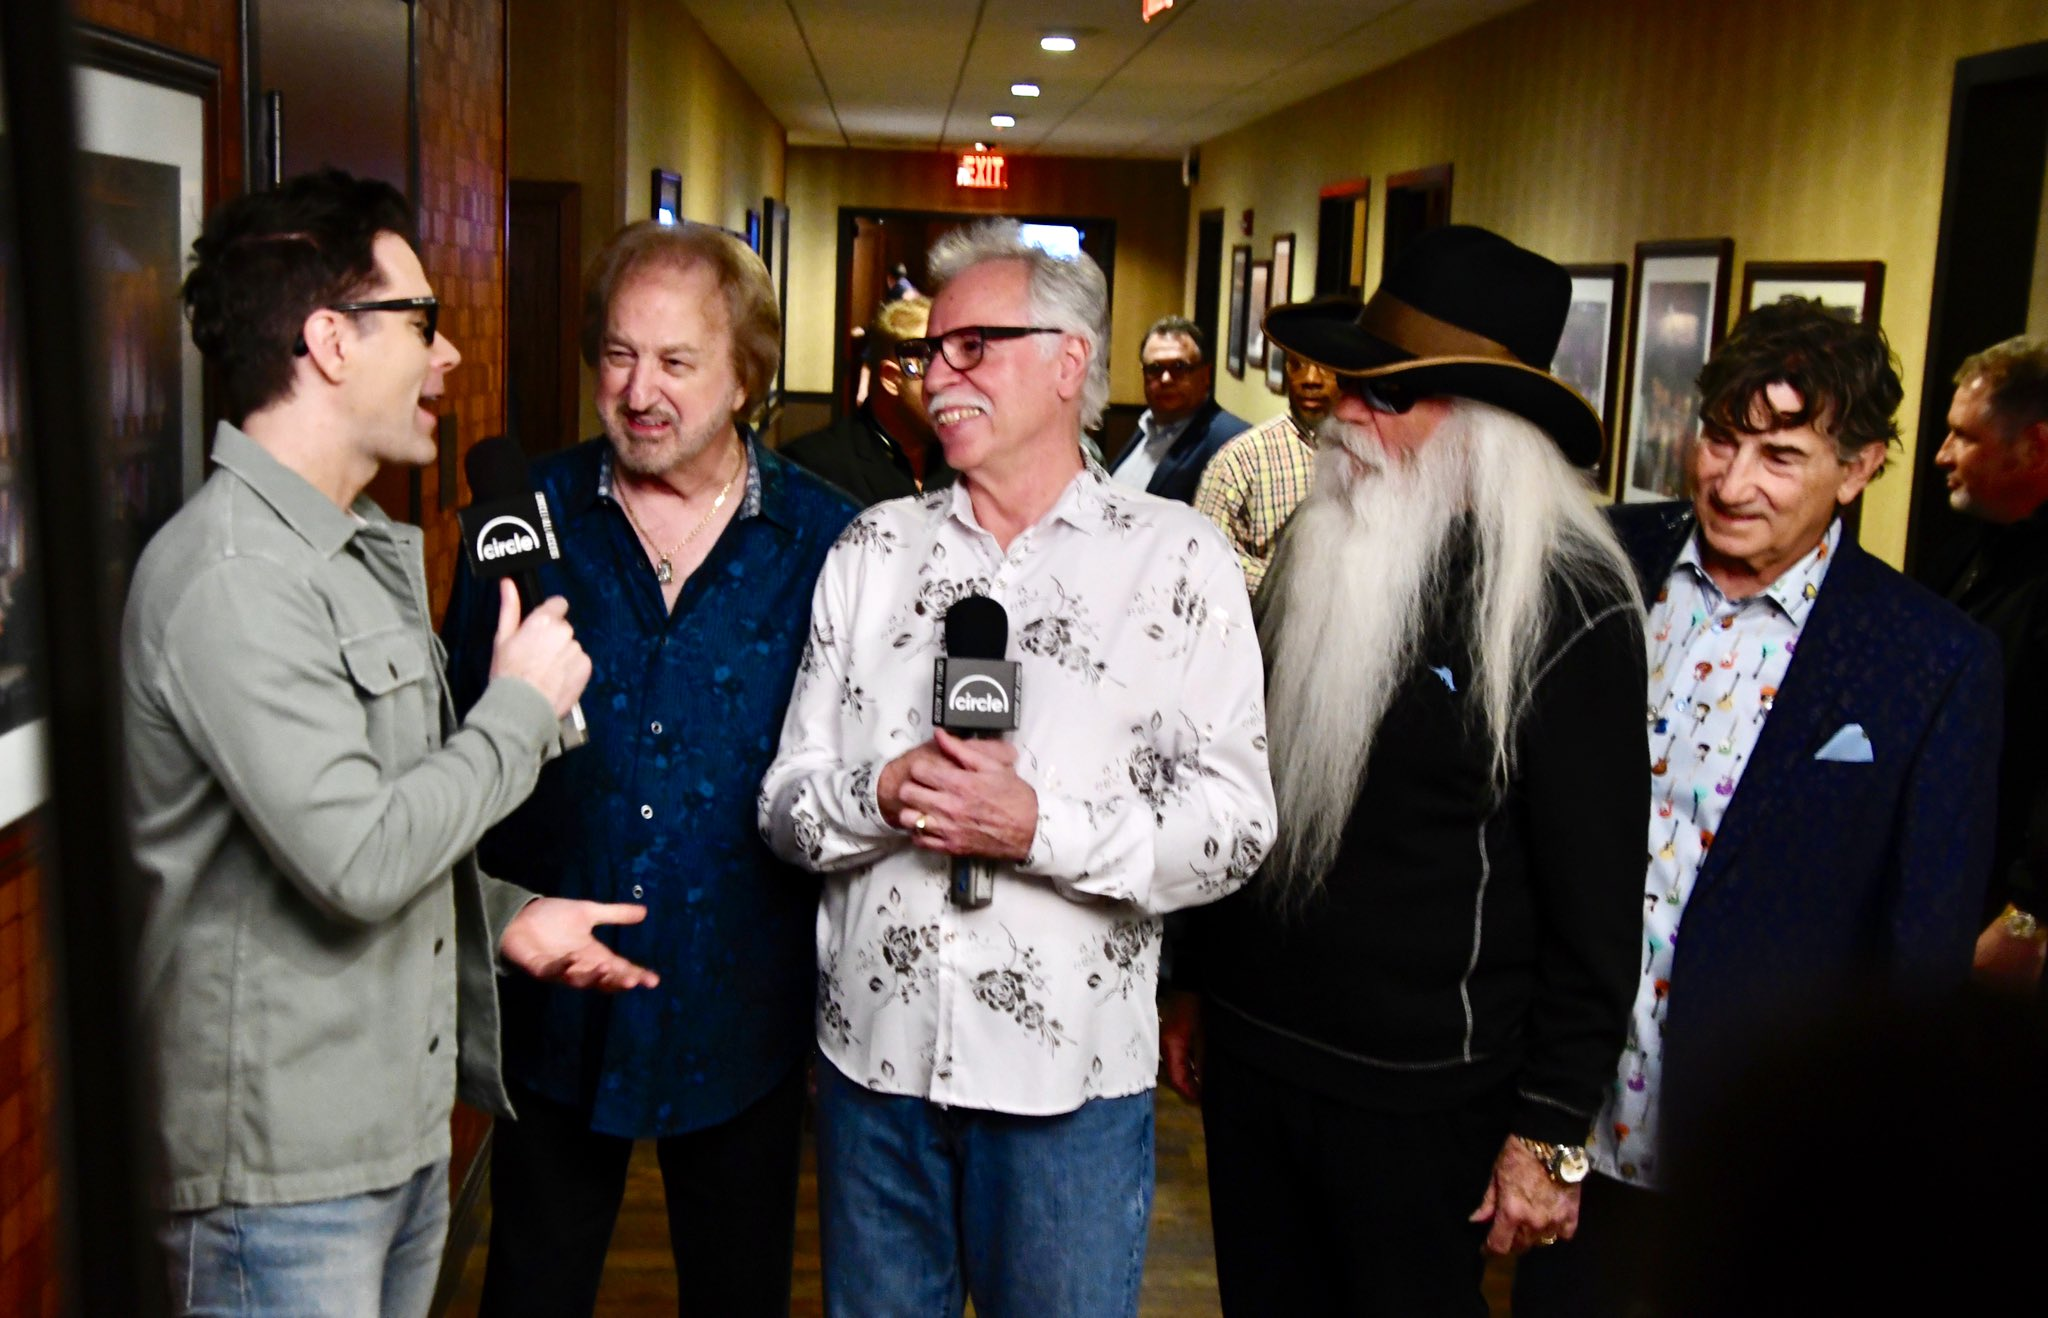 Interviewing with brother @bobbybonesshow .... @opry  ... photos by @jonmir https://t.co/4EuDsYr1KI